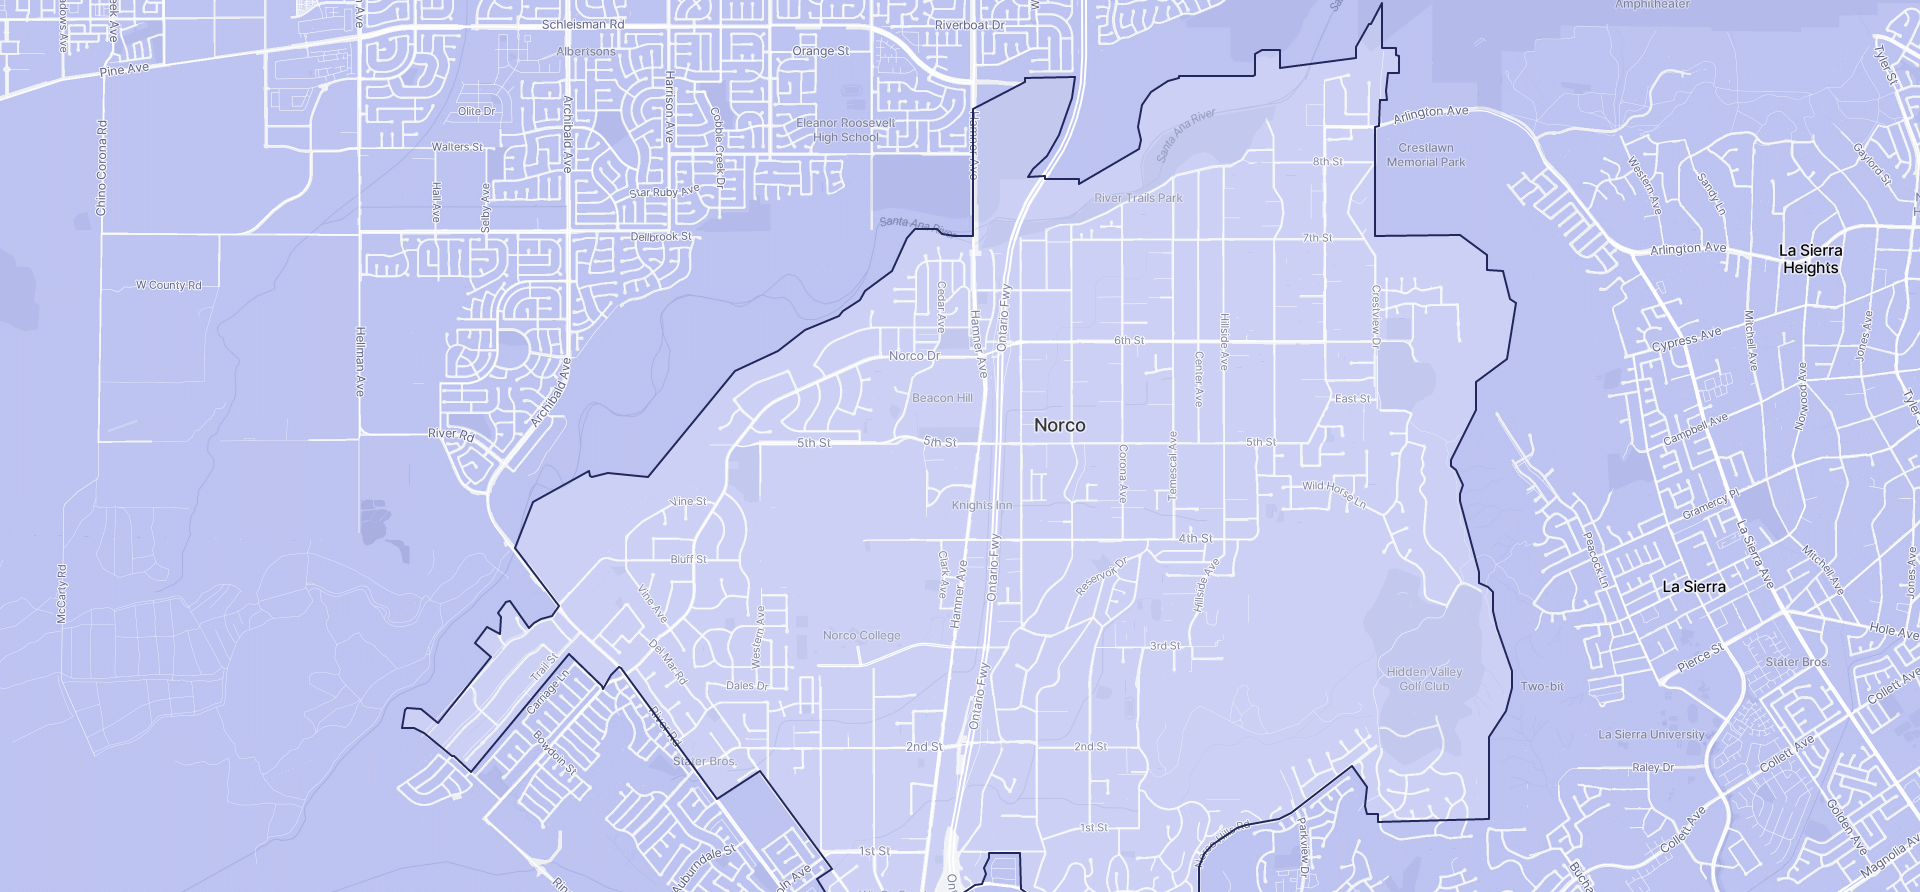 Image of Norco boundaries on a map.